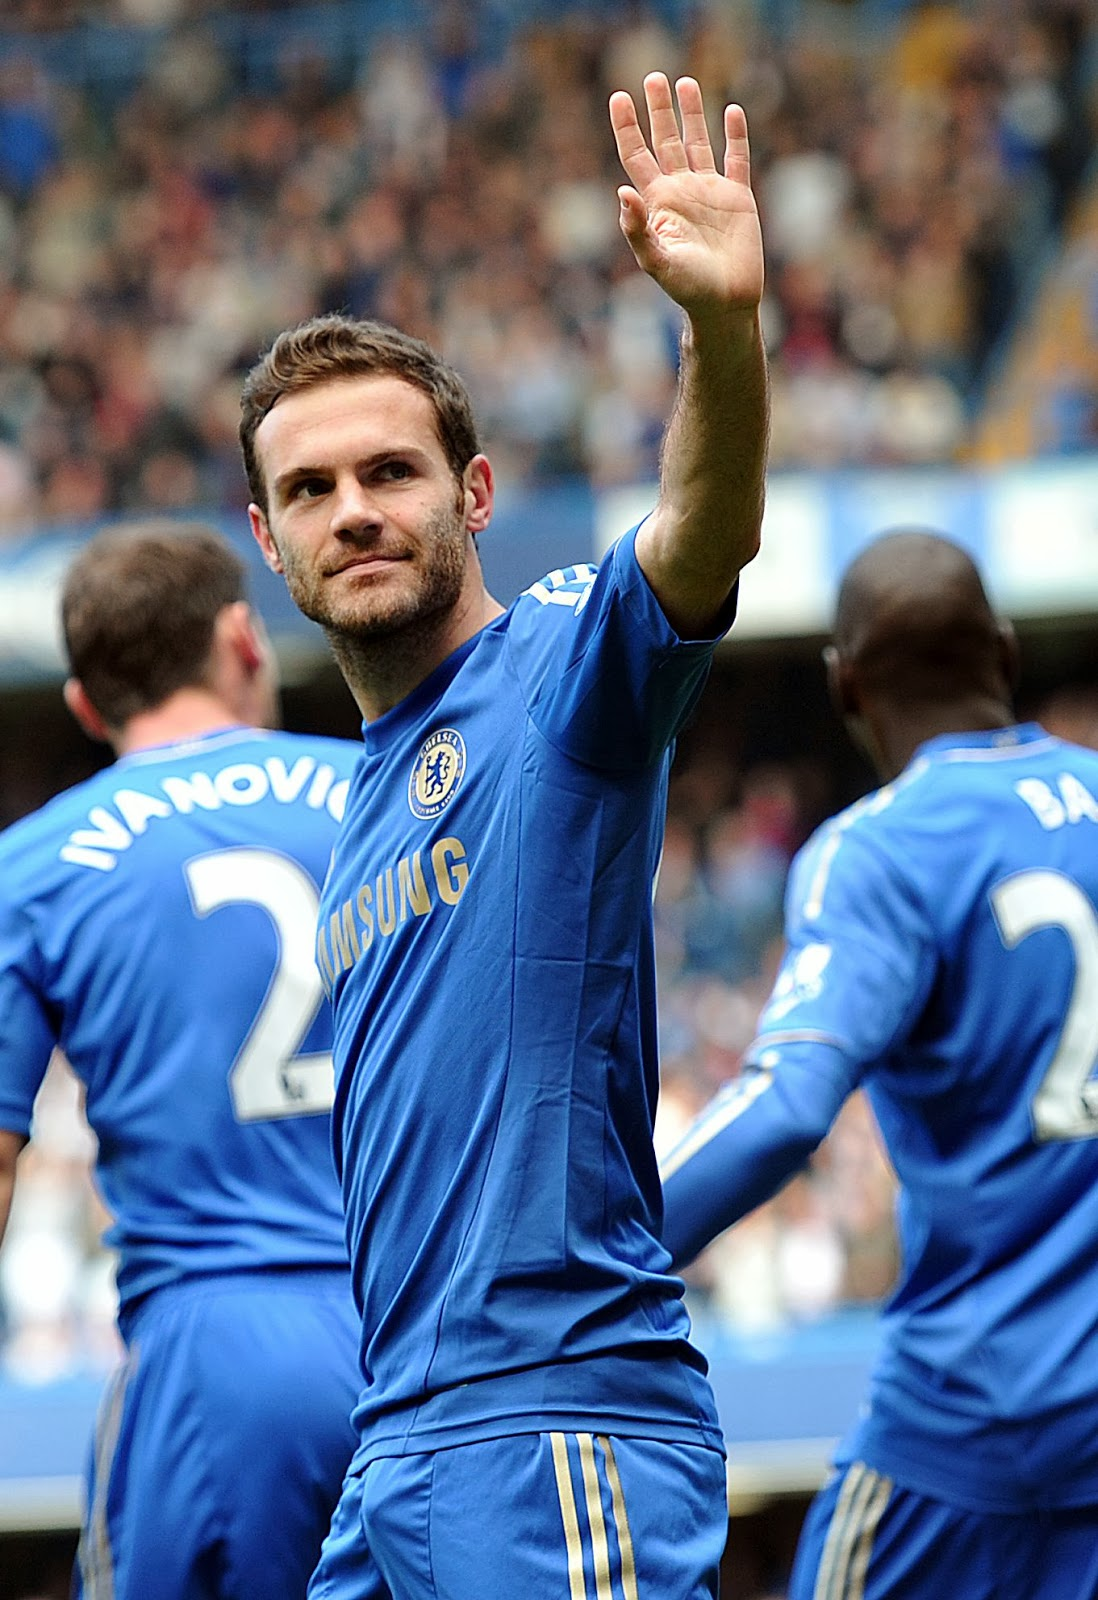 Sports, Footballer, Football, Manchester United, Juan Mata, Chelsea, Record, £37 Milloion, Spanish, Spain, English Premier League, Everton, Most Costly, Managers, Slamme, Midfielder, World, League,